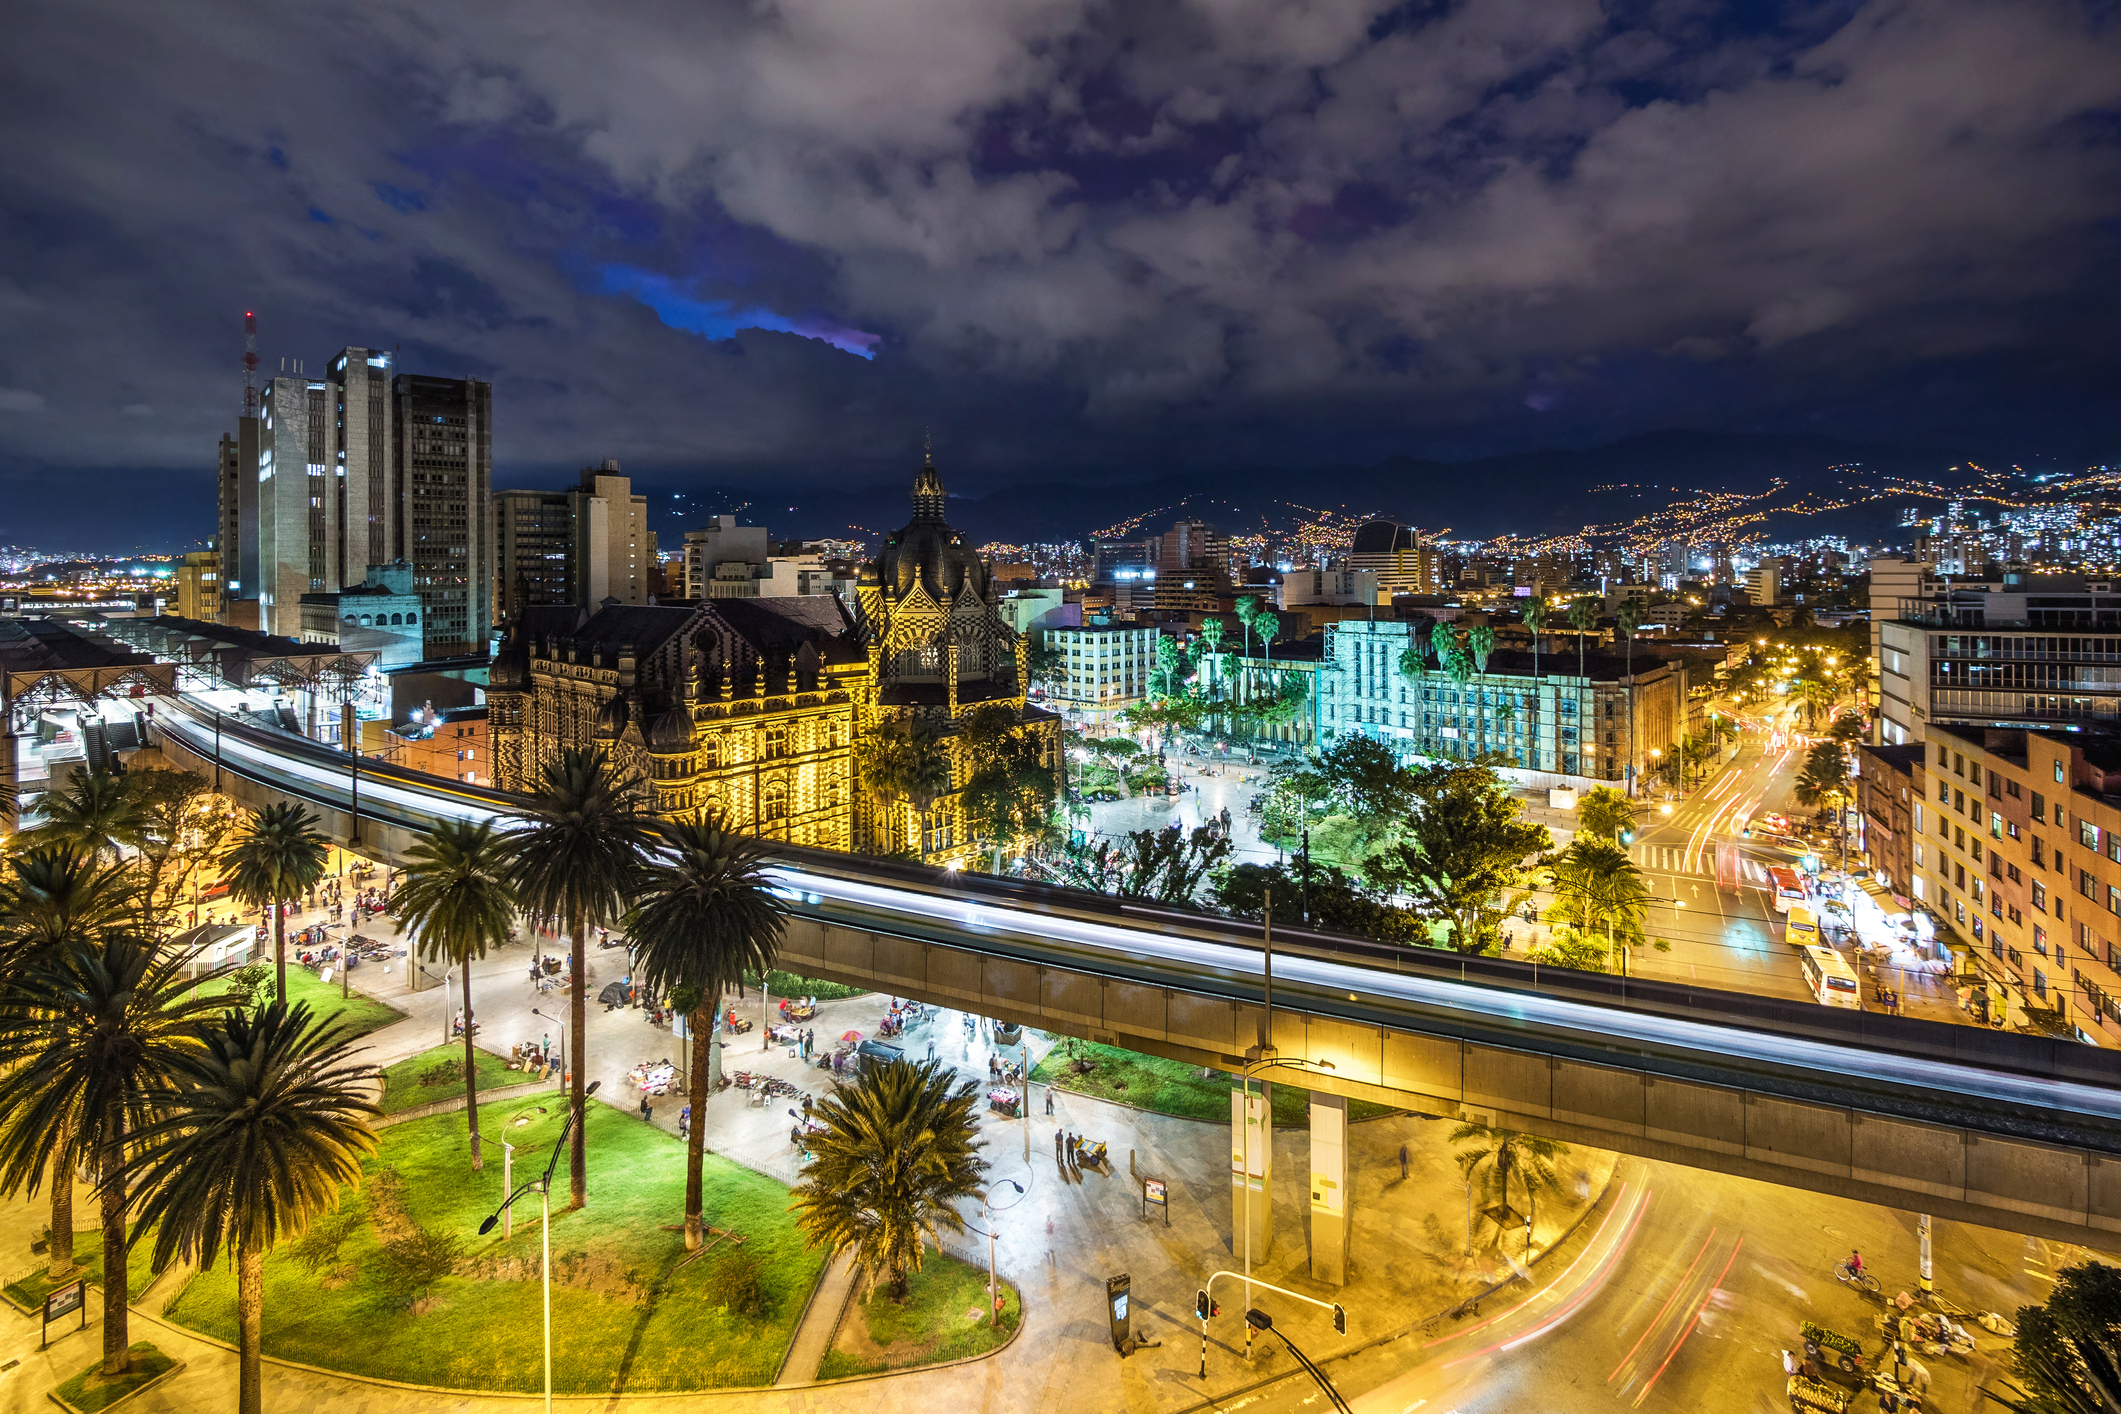 Plaza Botero Square and Downtown Medellin at Dusk in Medellin, Colombia